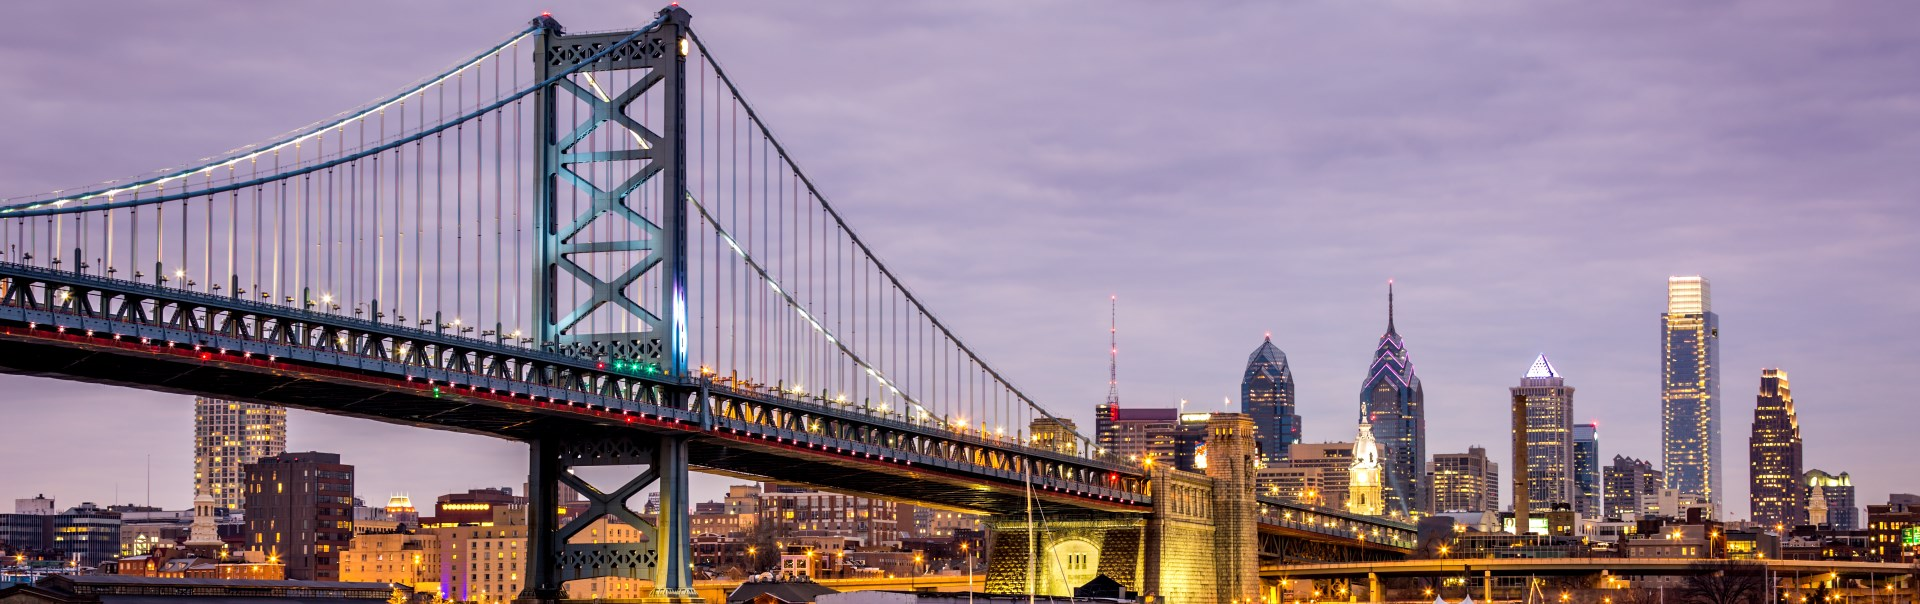 Ben-Franklin-bridge-and-Philadelphia-skyline.jpg